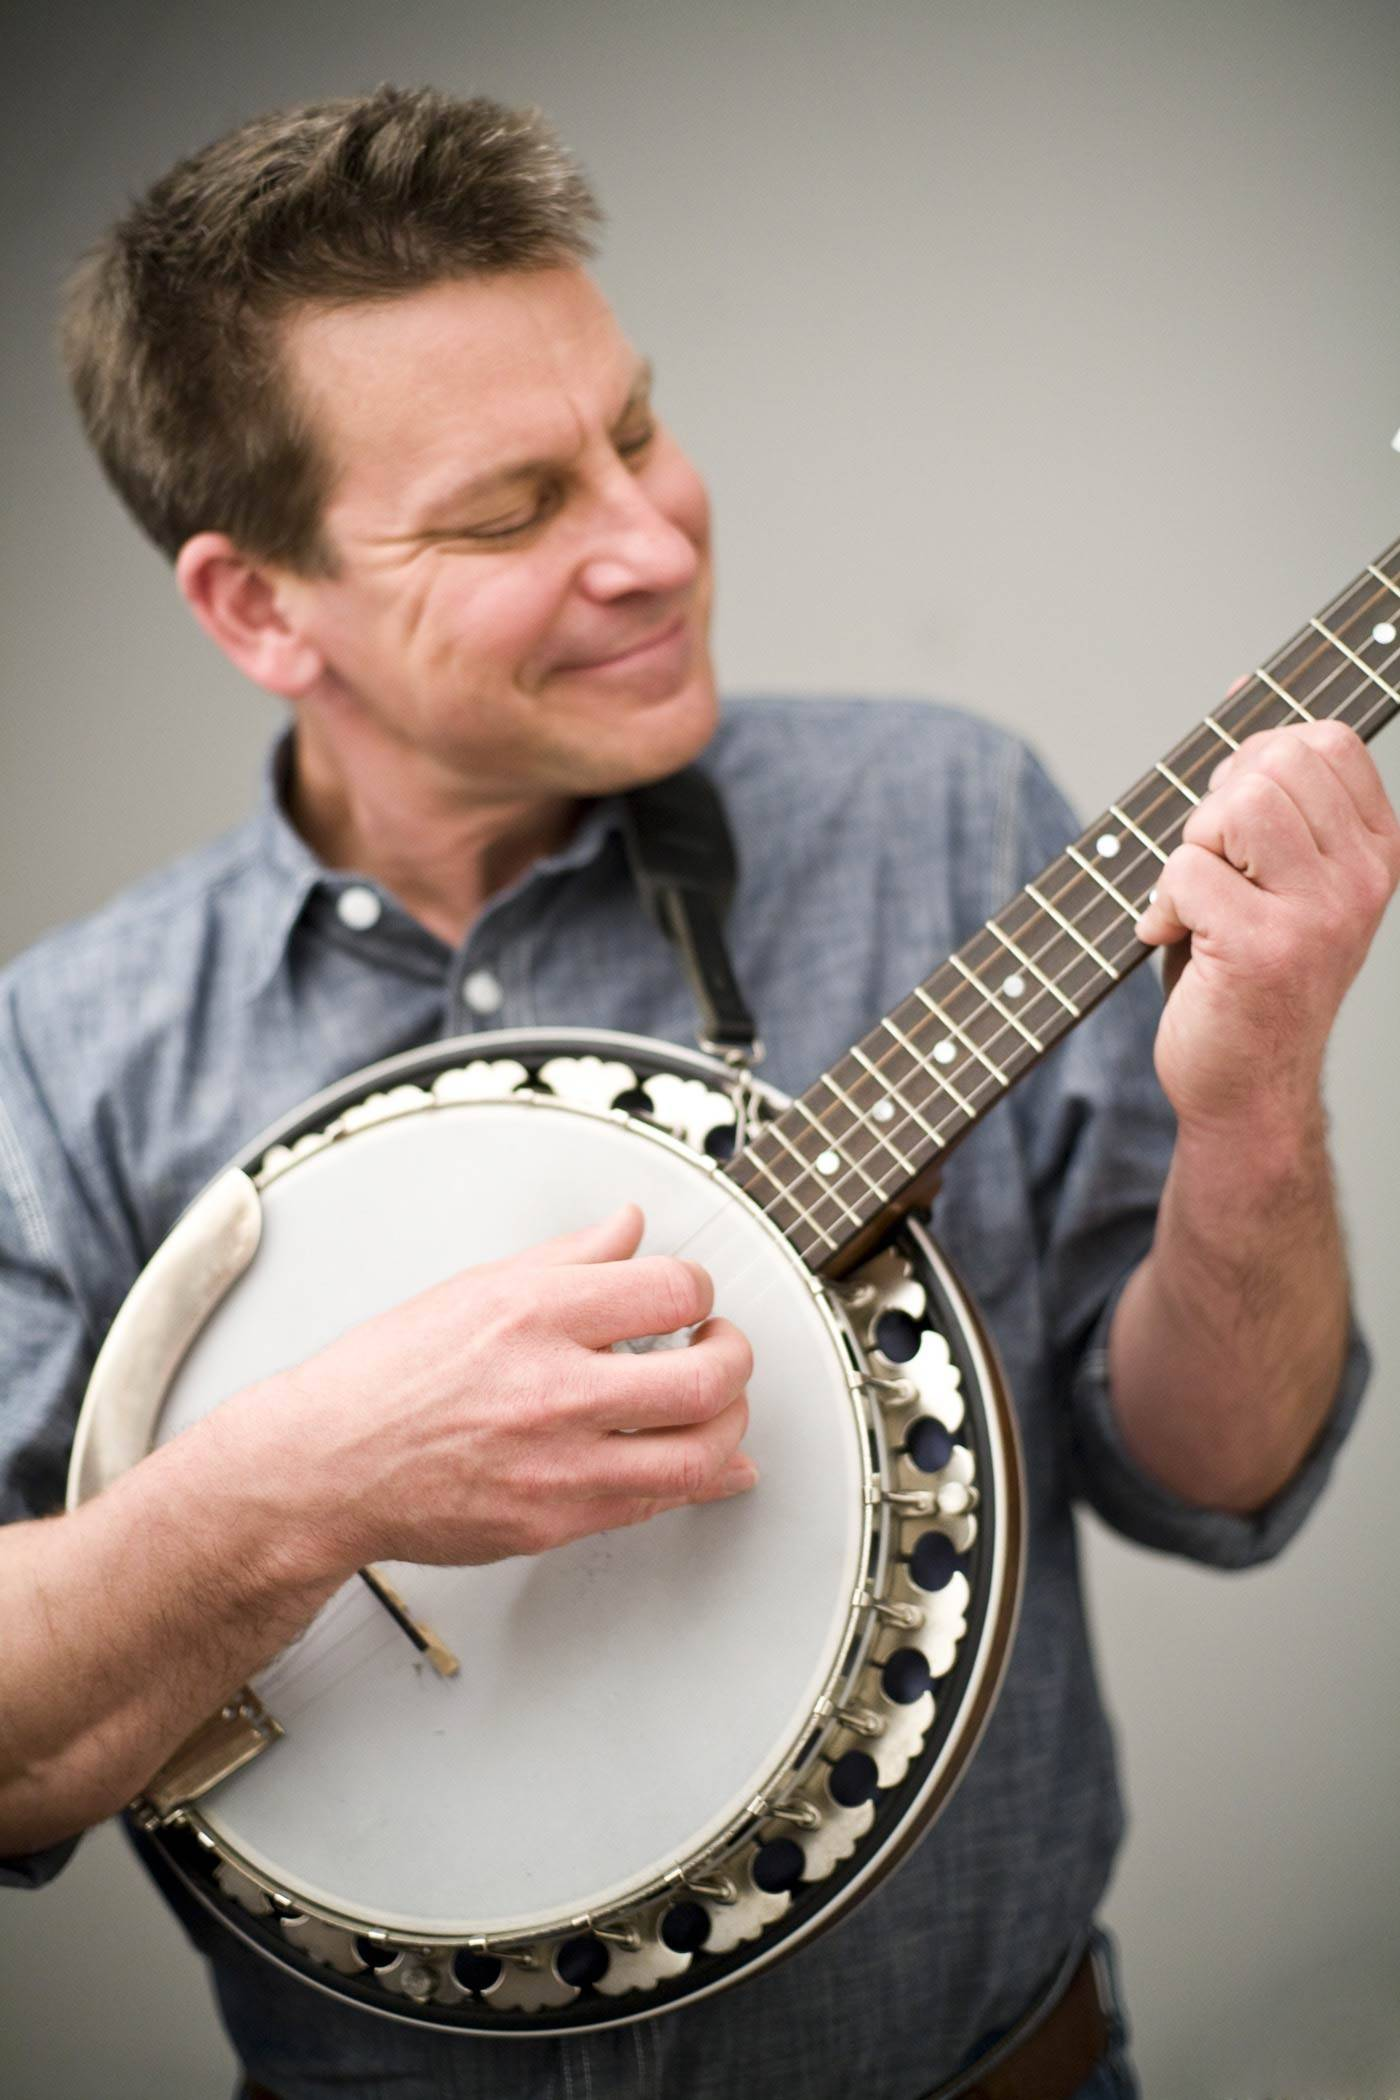 Award-winning musician Jim Gill performs in a family concert in Naperville to benefit the DuPage Children's Museum and the not-for-profit Bridge Communities organization.